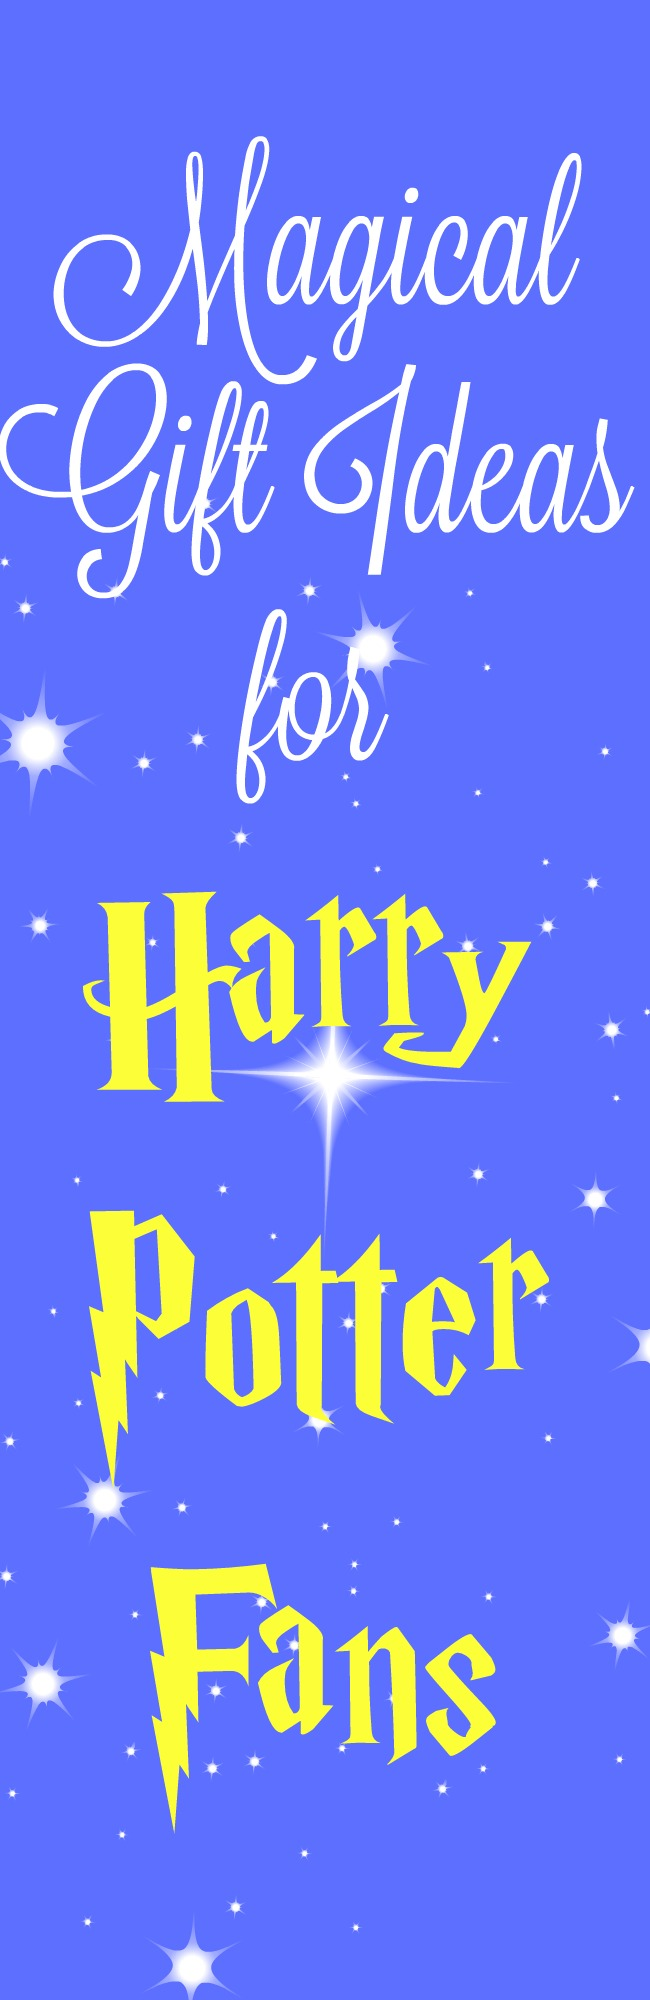 Magical gift ideas for Harry Potter Fans via @clarkscondensed